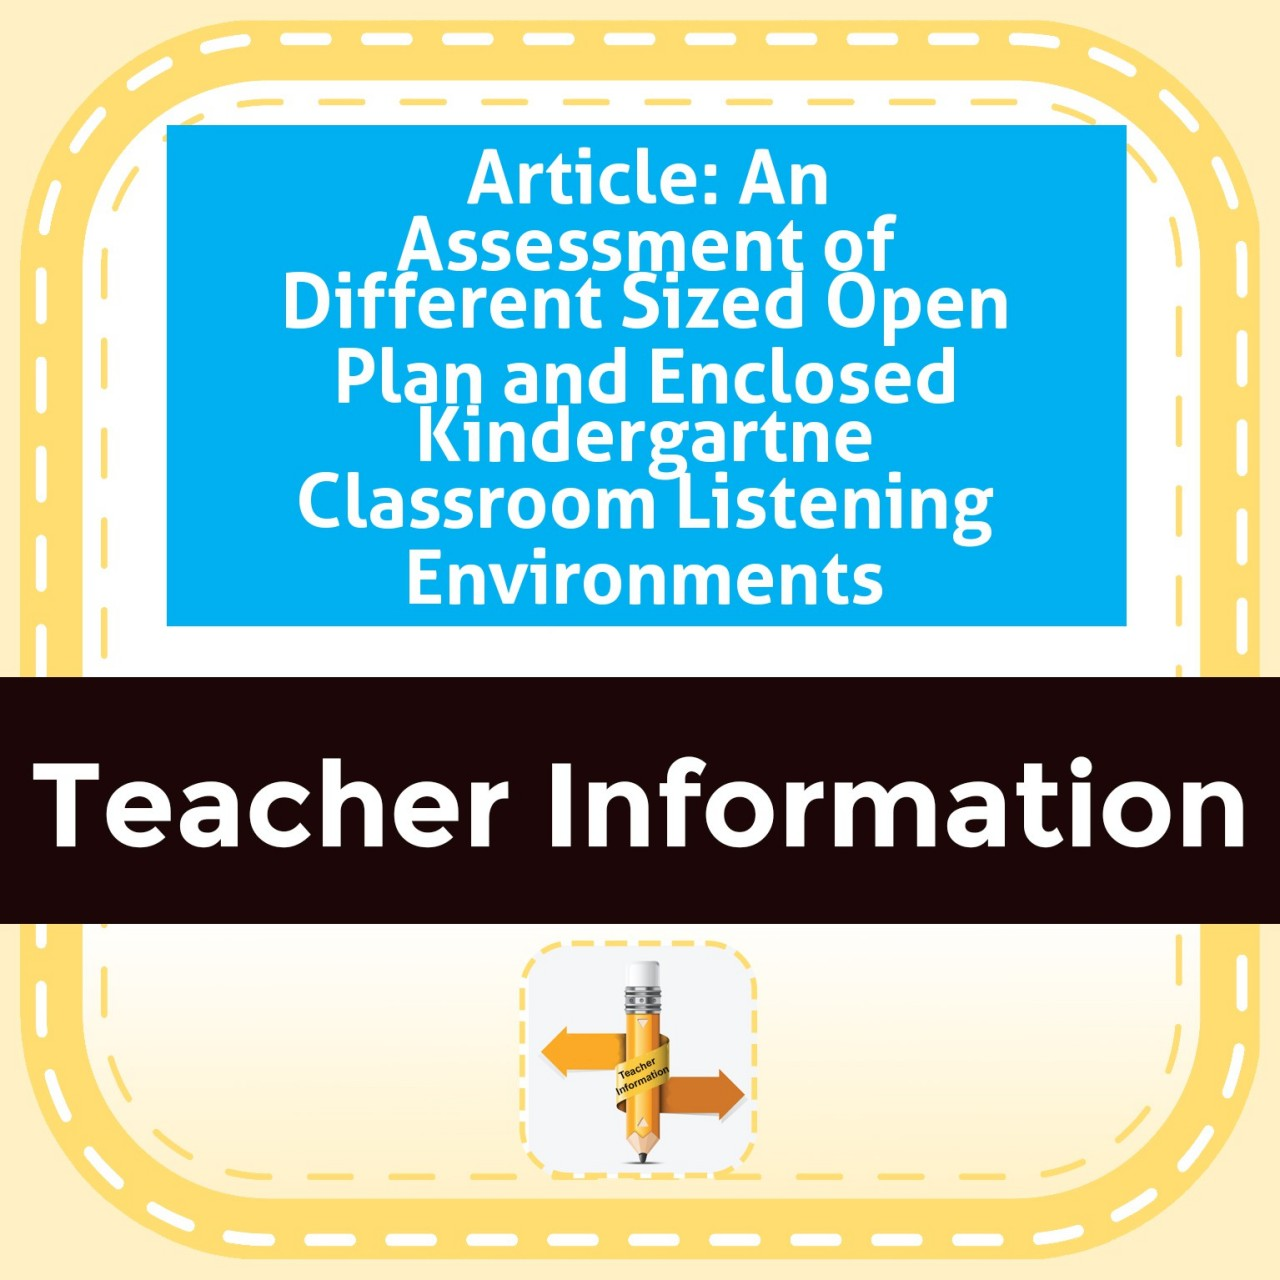 Article: An Assessment of Different Sized Open Plan and Enclosed Kindergartne Classroom Listening Environments